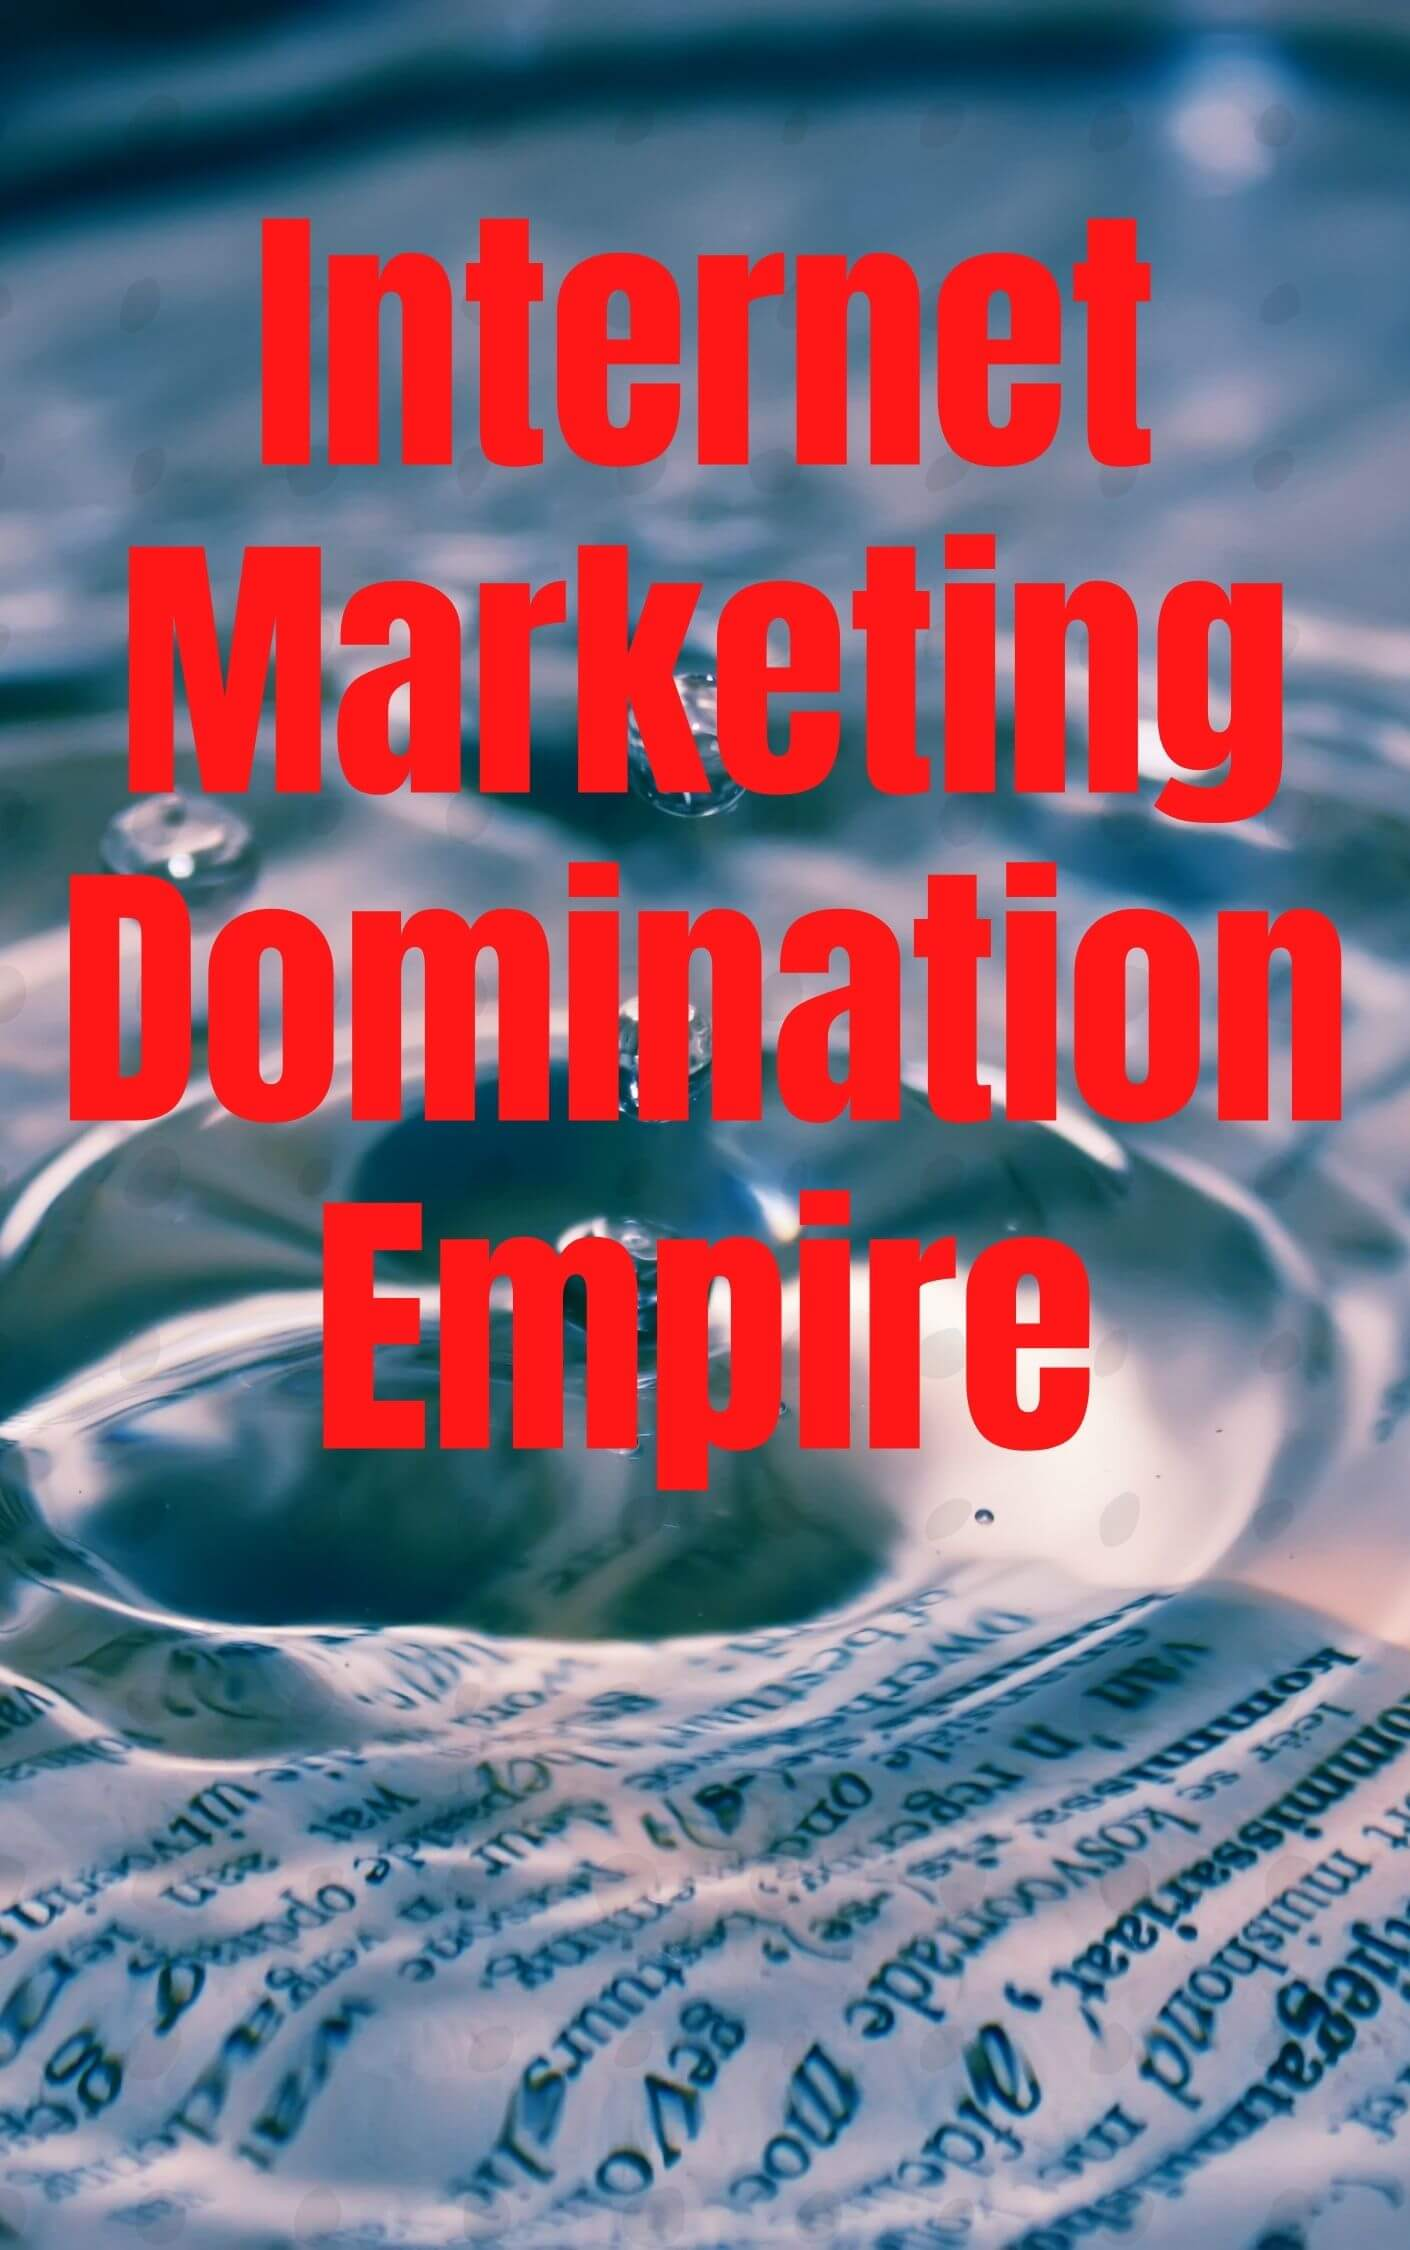 Internet Marketing Domination Empire Cover